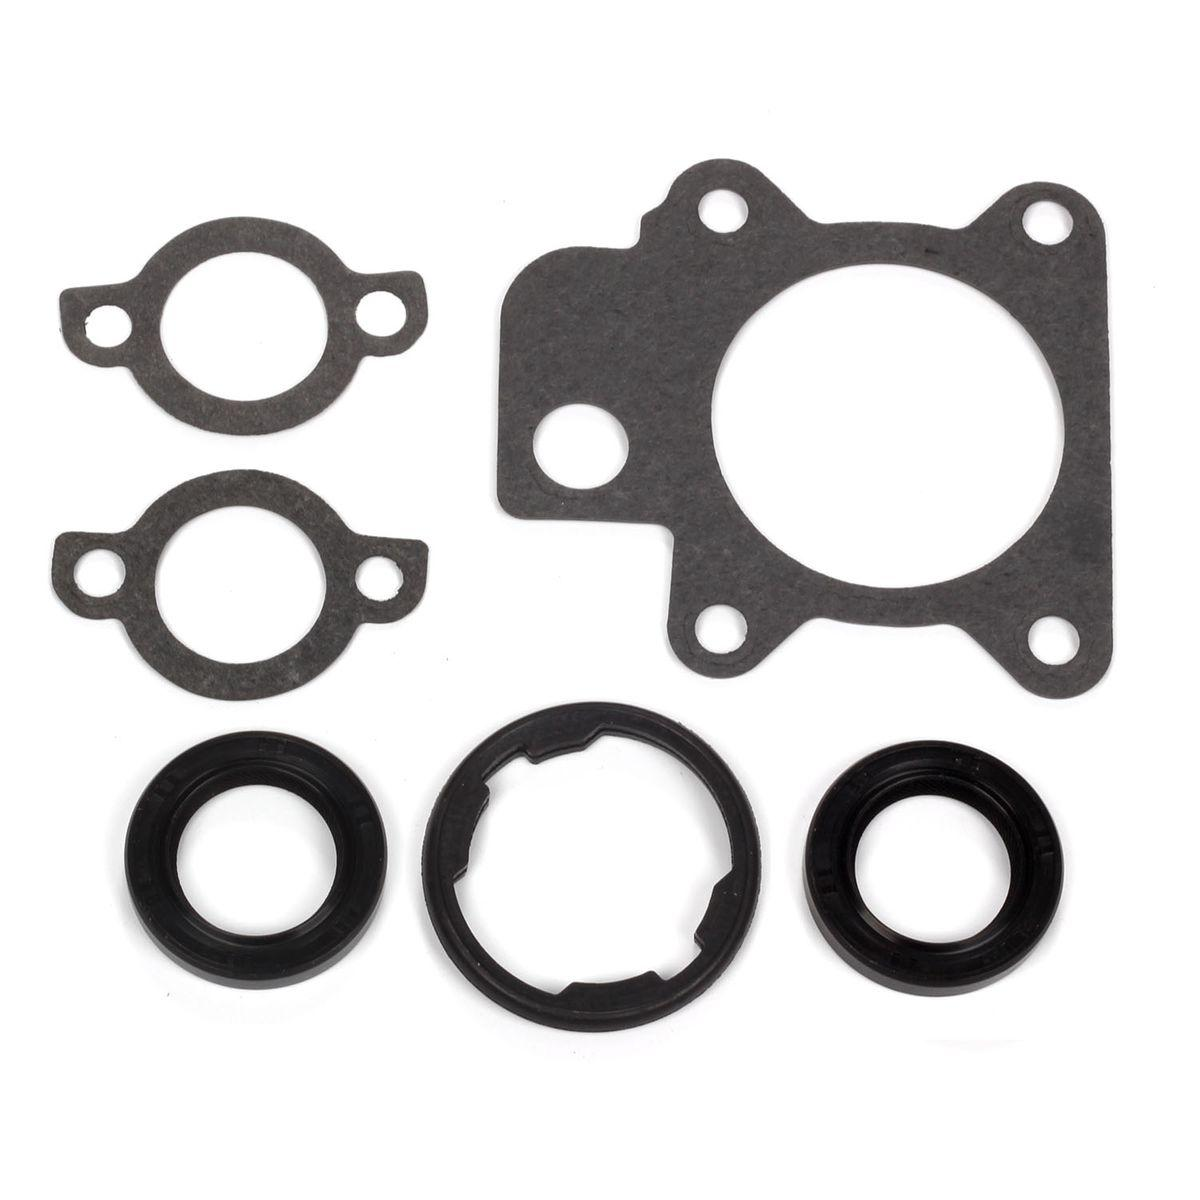 Acura Tl Cylinder Head Gasket Sets: For 98-04 Acura Honda Isuzu Cylinder Head Gasket 3.2 & 3.5